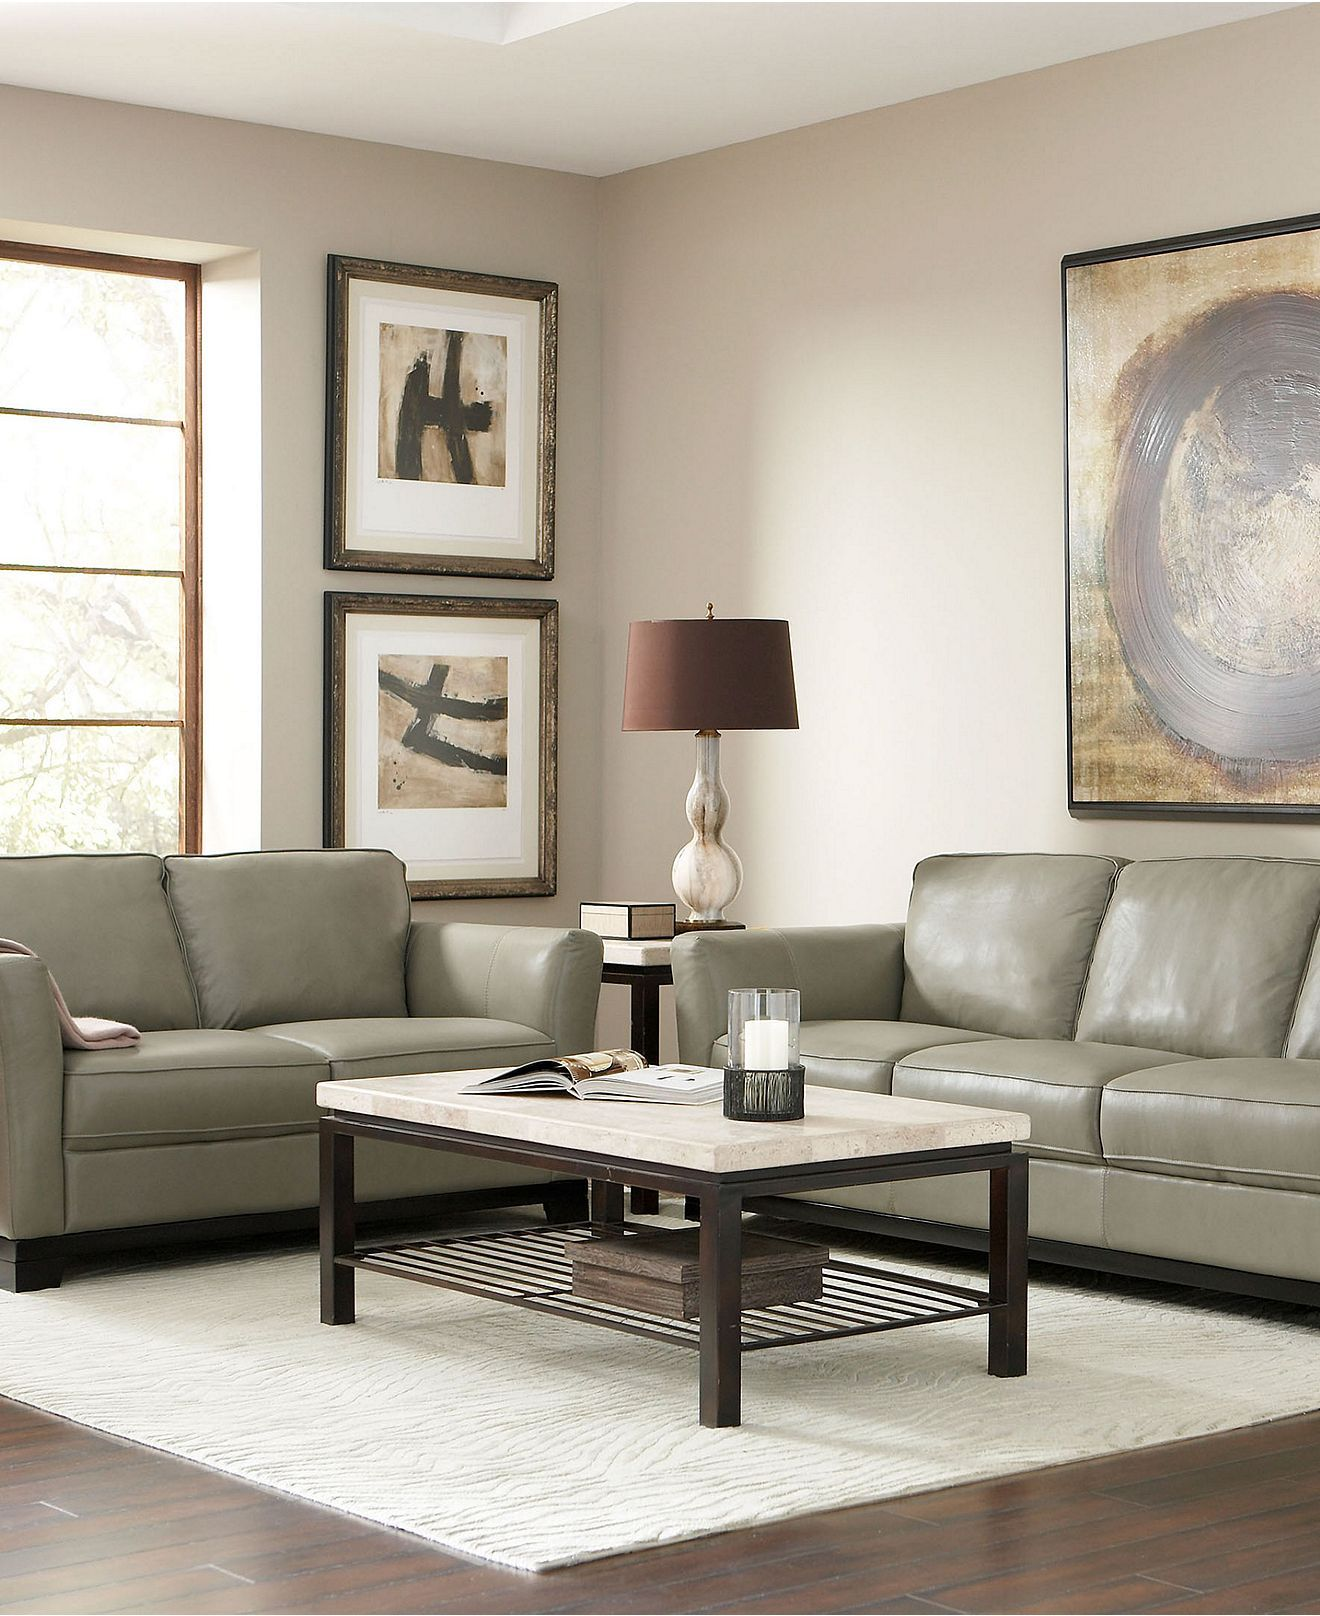 Turin Leather Living Room Furniture Sets & Pieces - Living ...